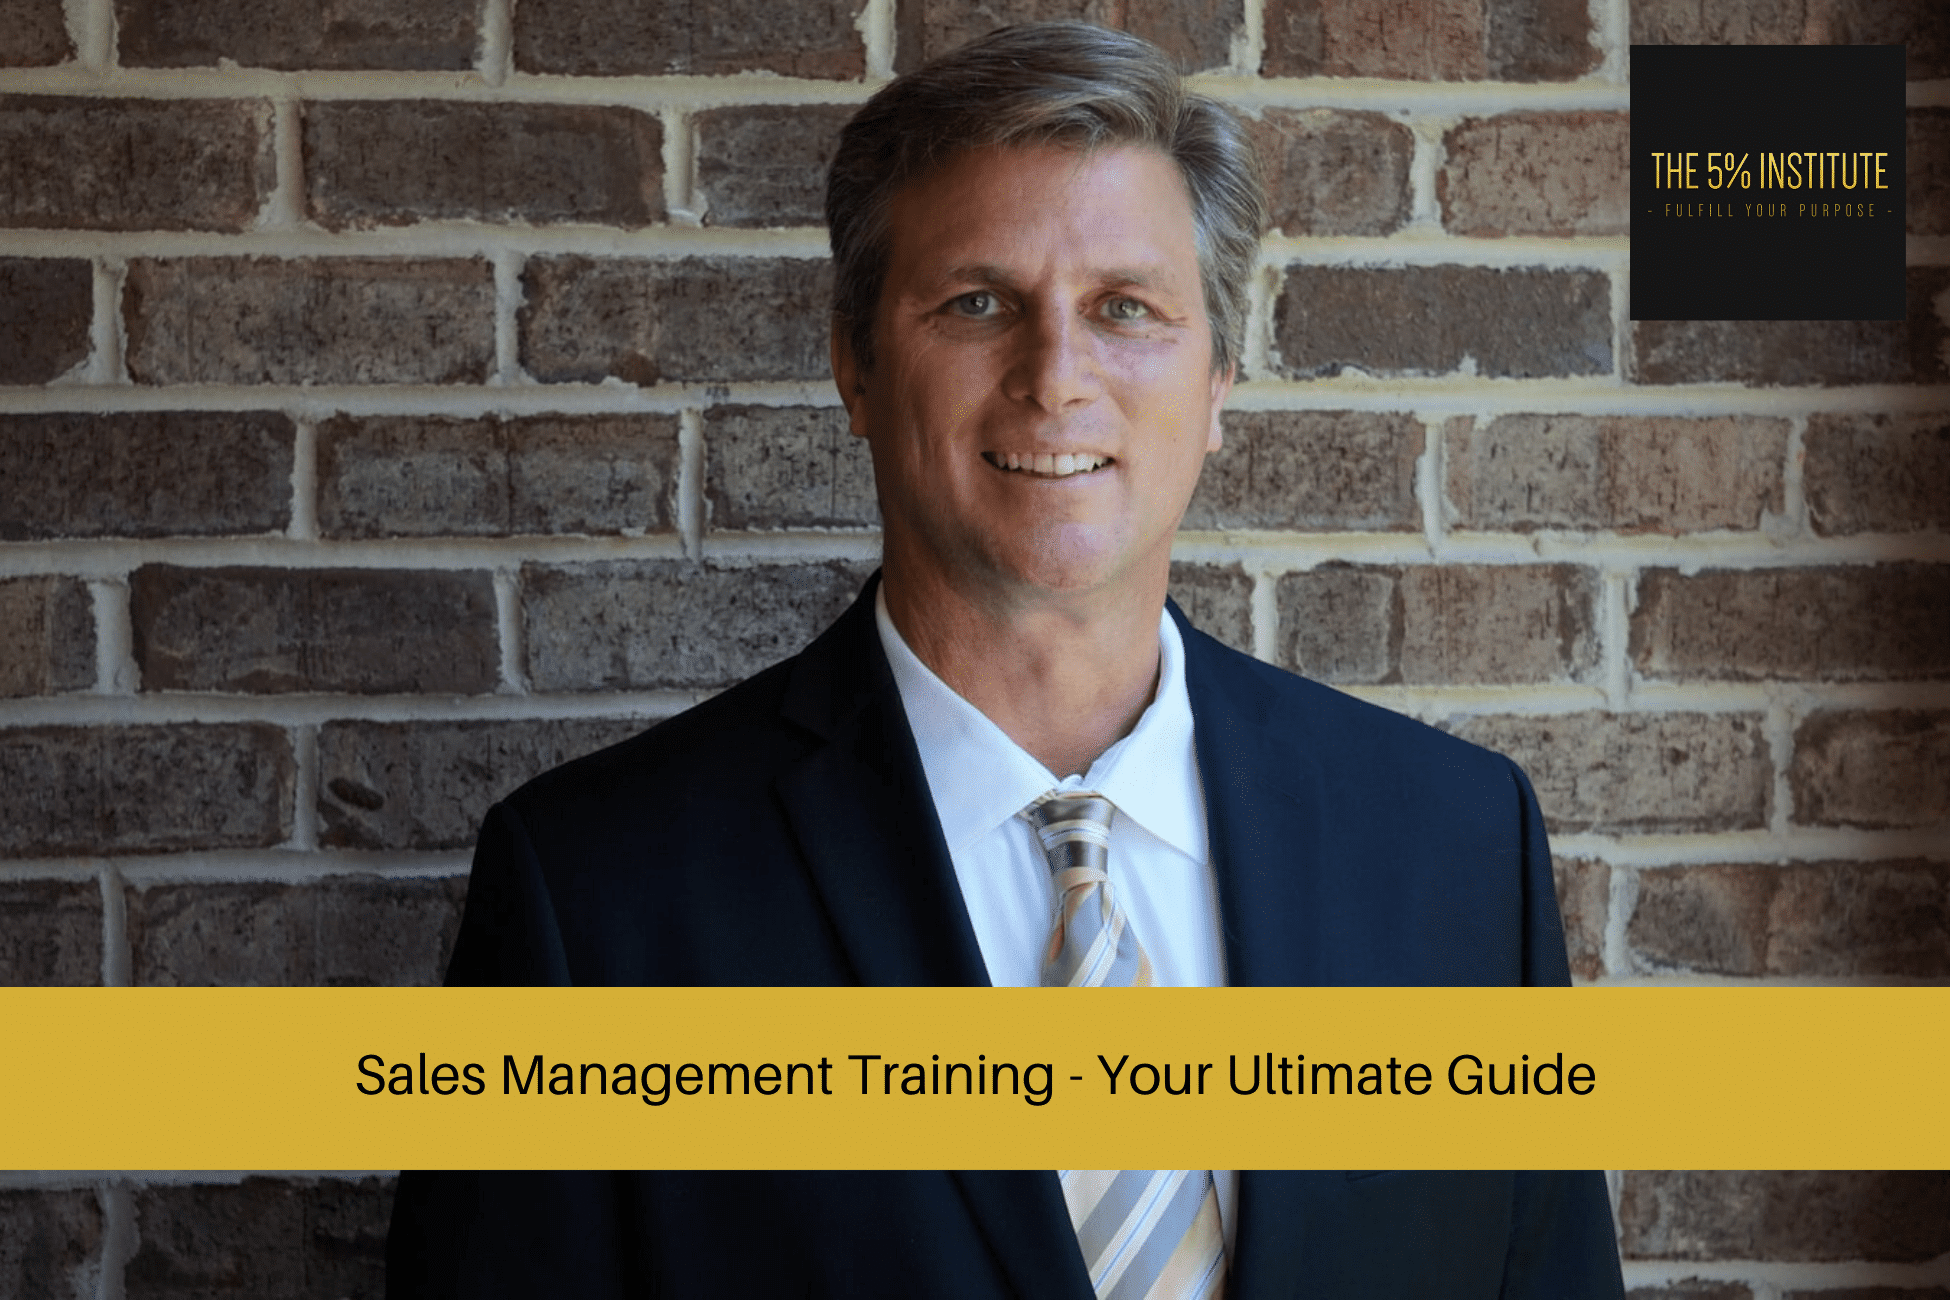 sales management training ; sales manager training ; training for sales managers